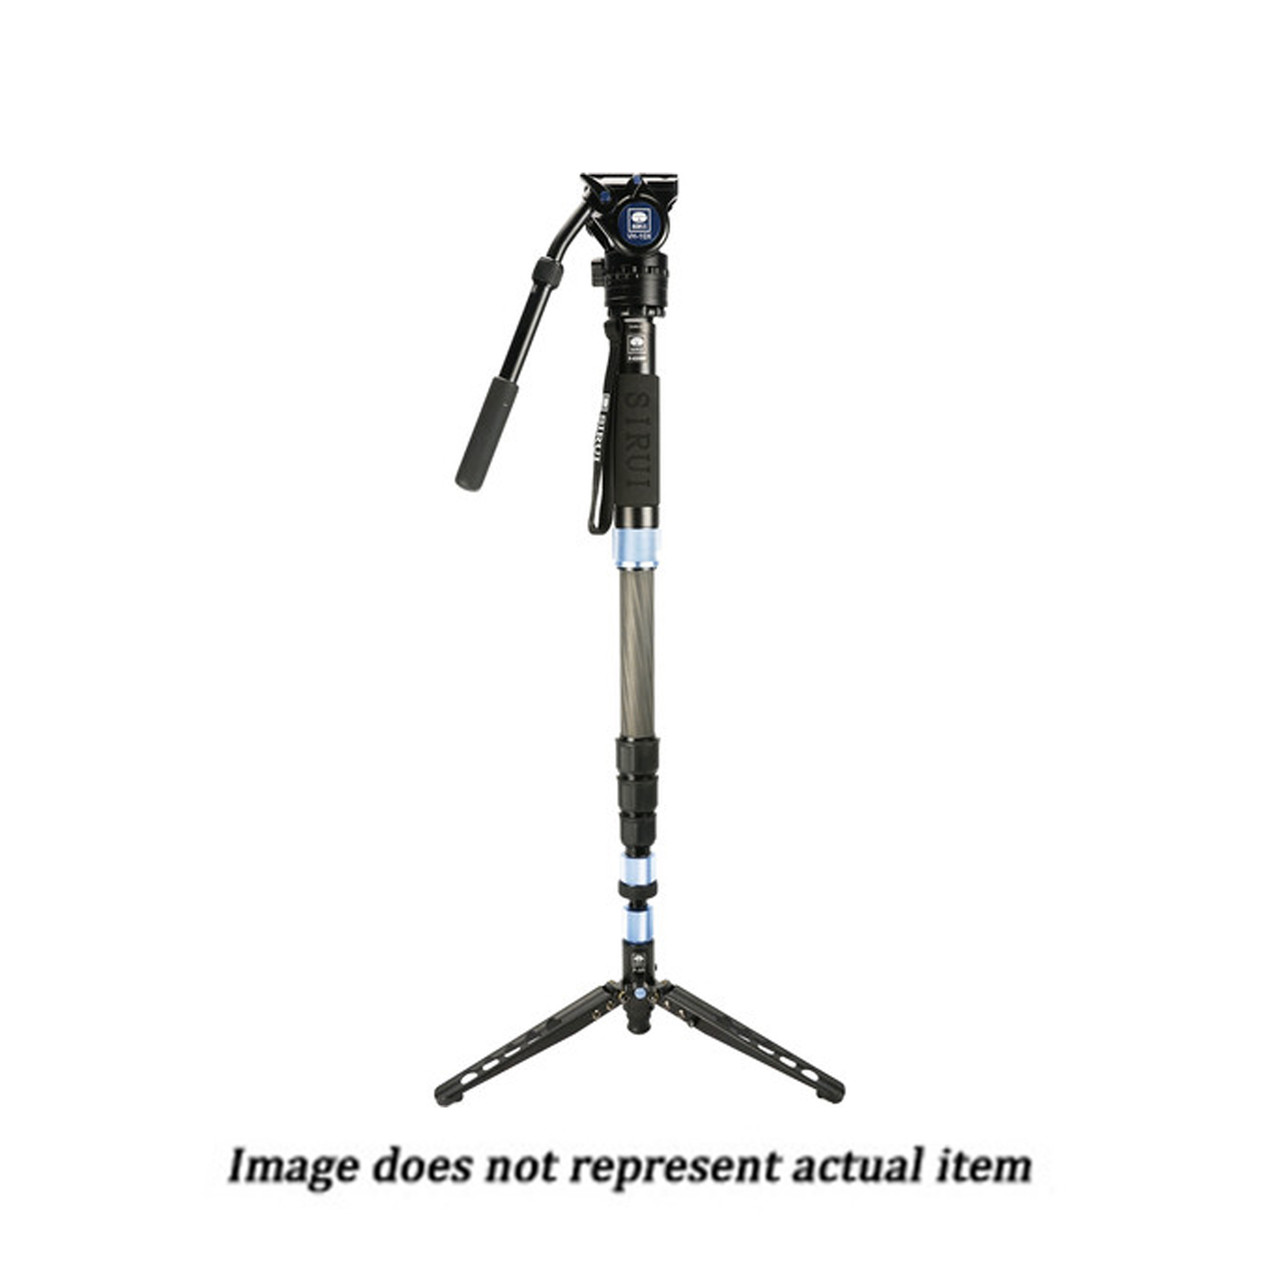 Sirui P-424SR Photo/Video Monopod with VH-10X Head - (USED) S/N SR1153747